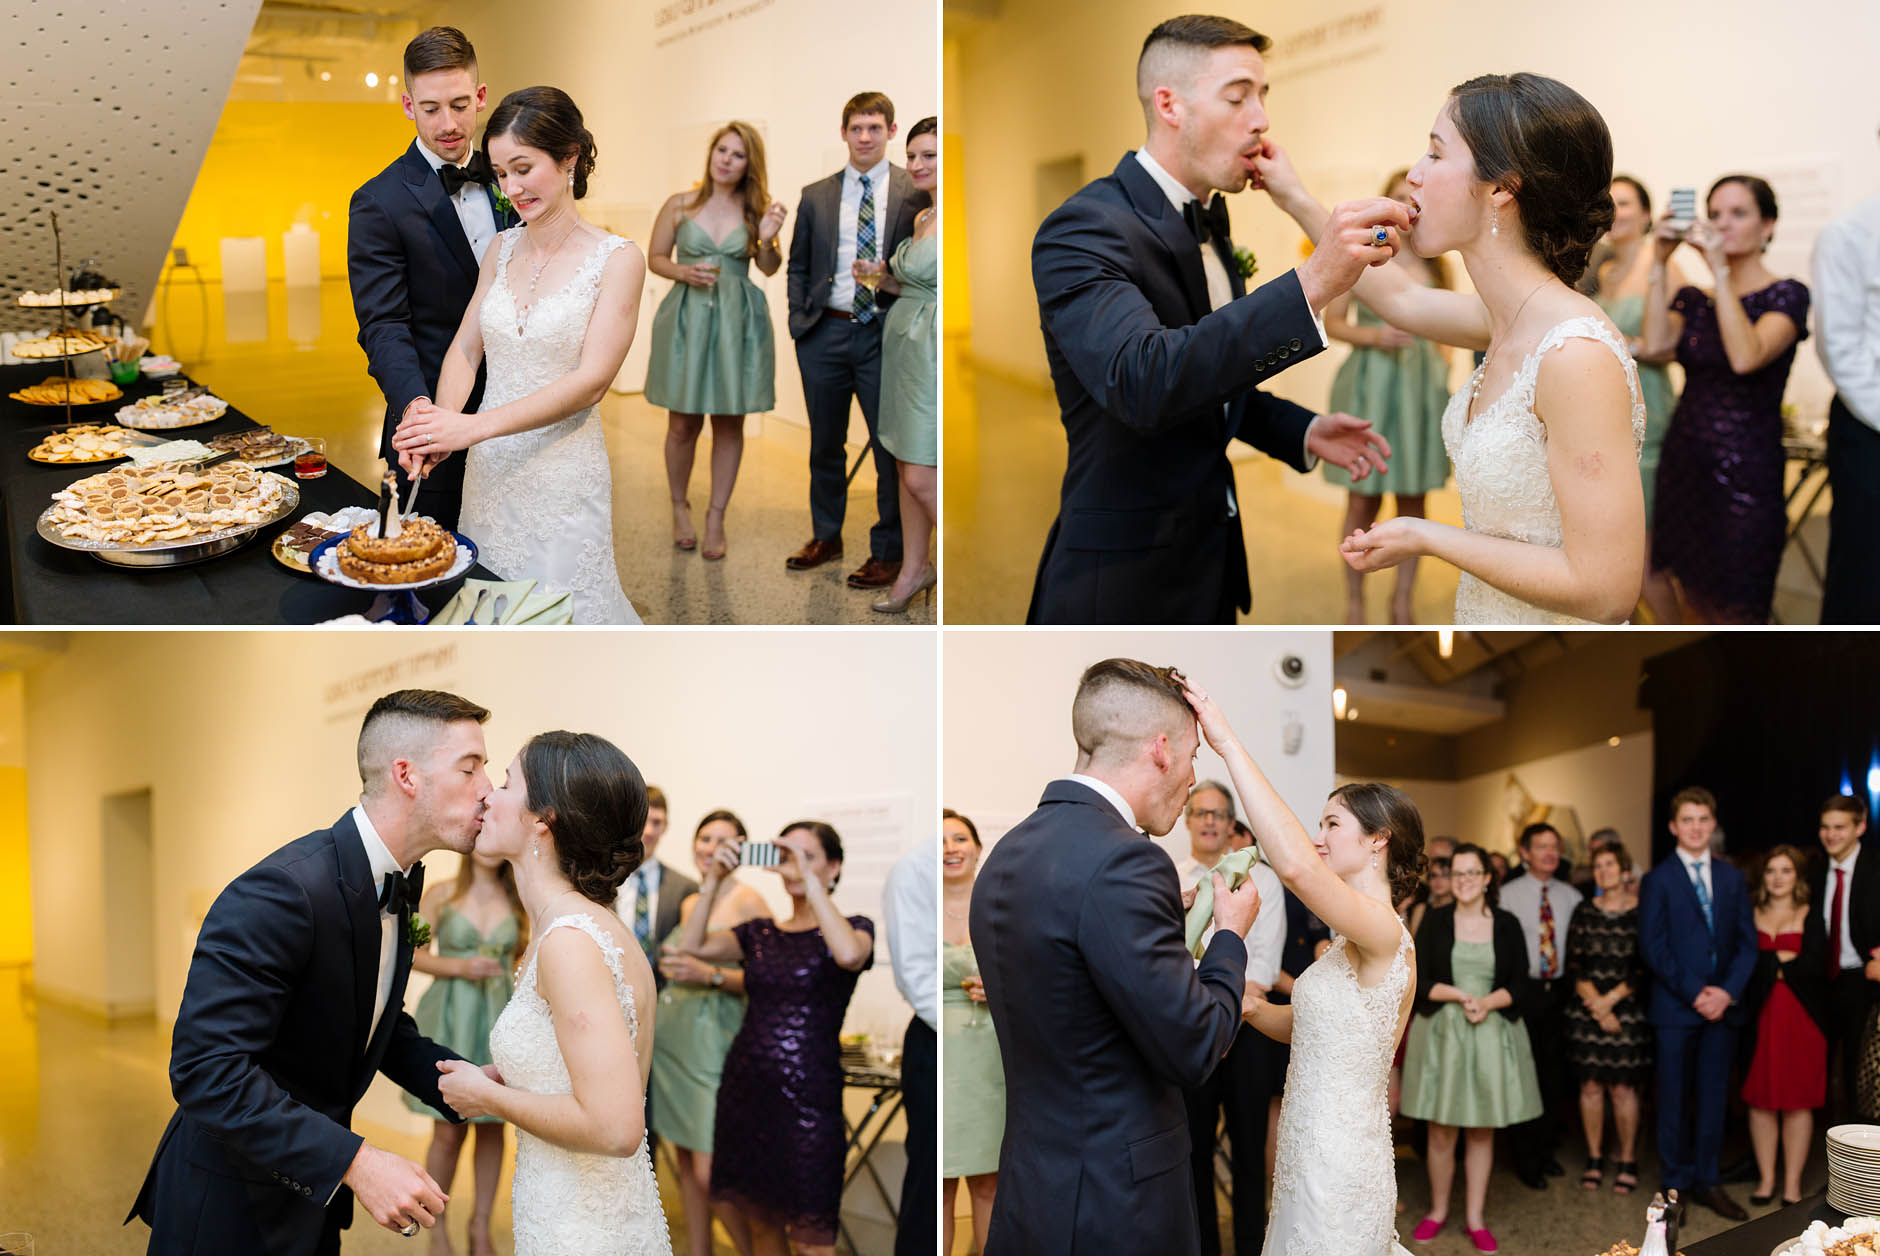 wedding-reception-cake-cutting